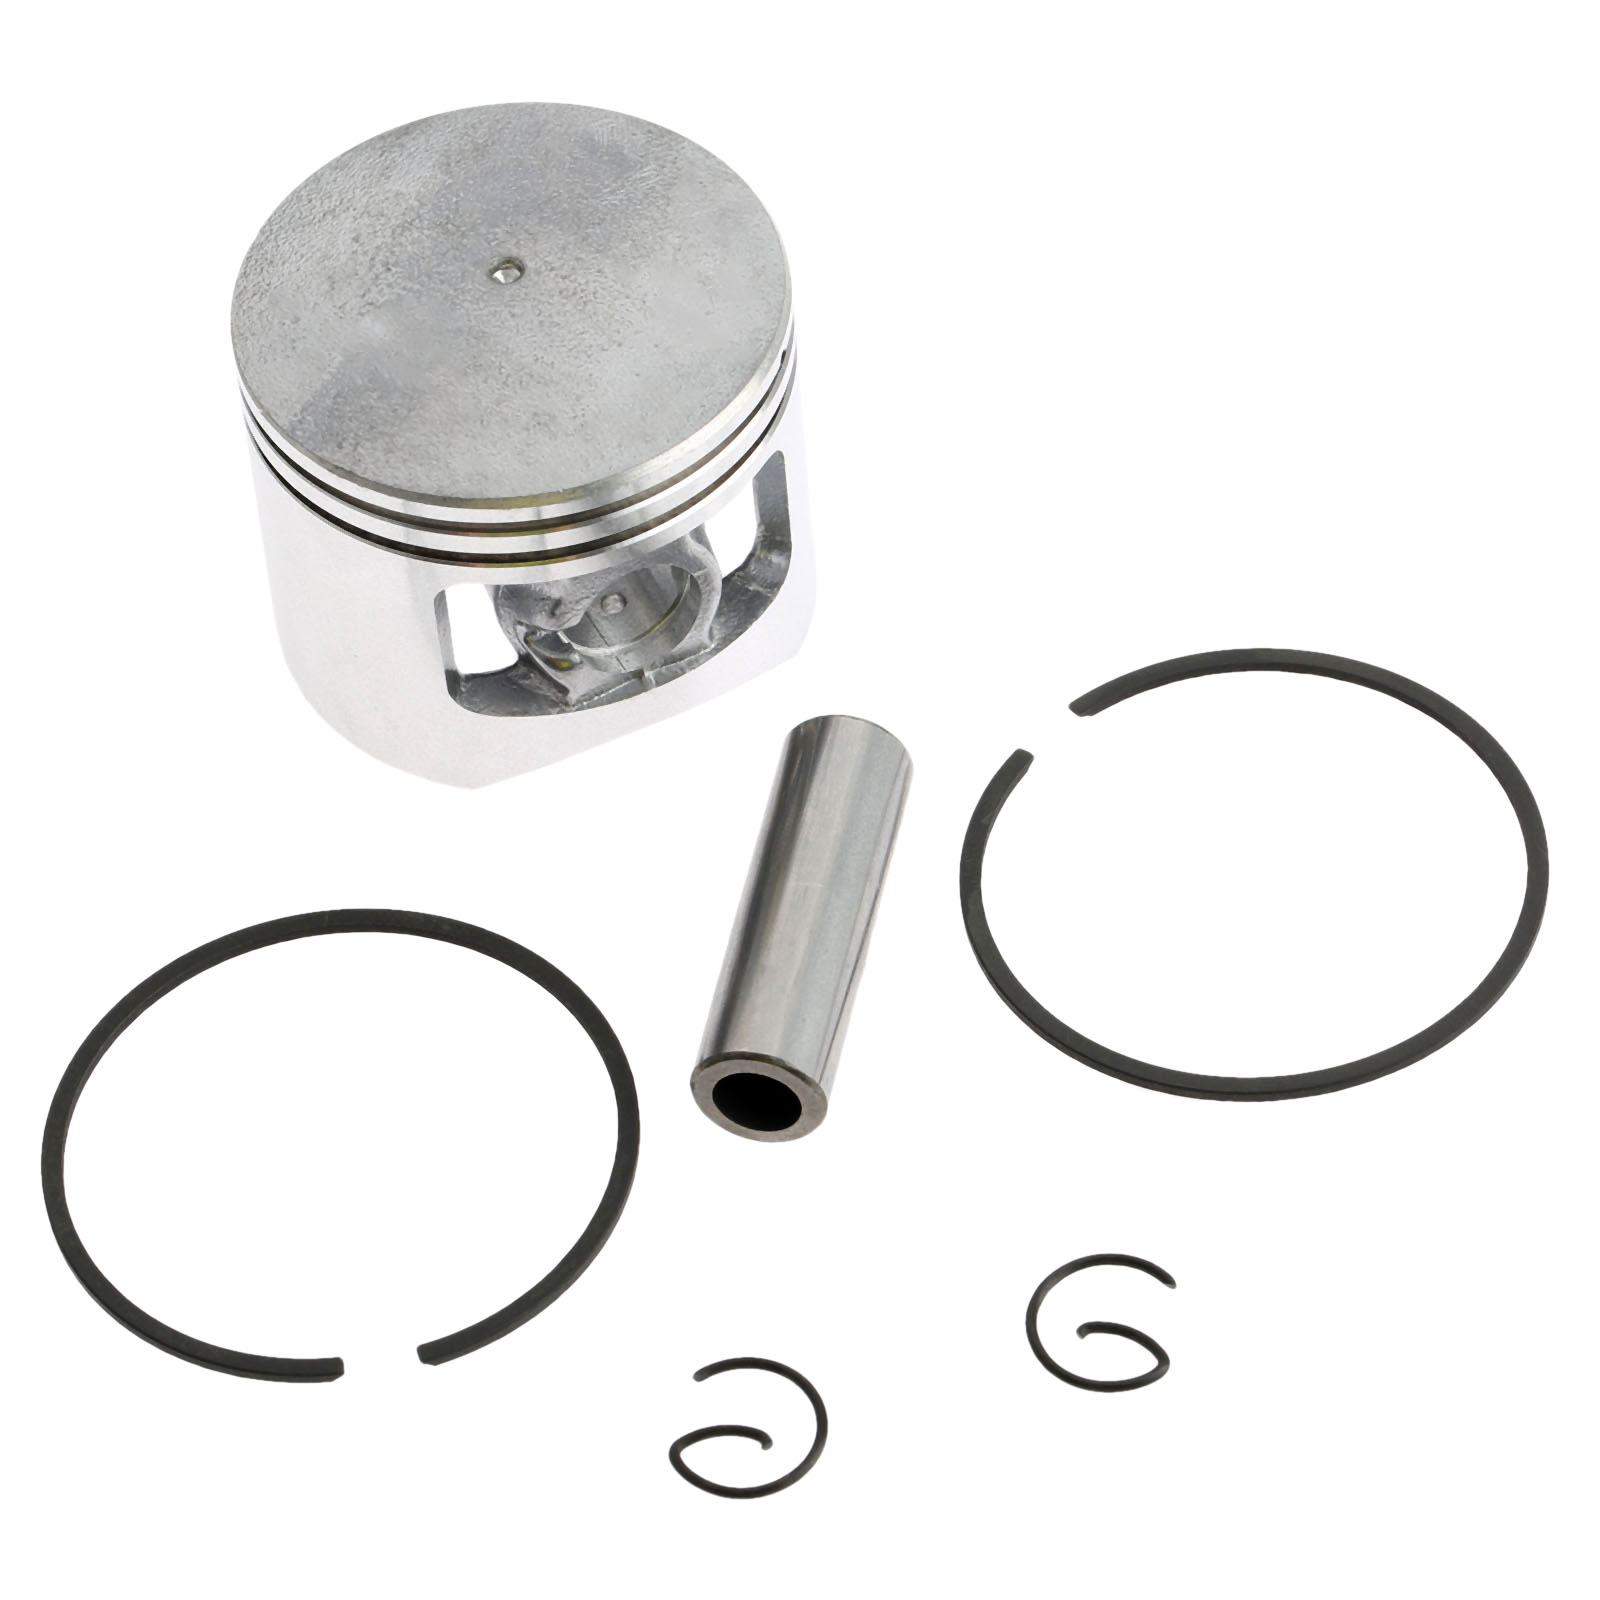 45mm Piston Kit Garden Tool Parts 5200 Chainsaw Piston Assy Set with Ring and Pin for STIHL 018 MS180 CHAINSAW Spare Parts New 38mm cylinder piston rings needle bearing kit for stihl ms180 ms 180 018 chainsaw